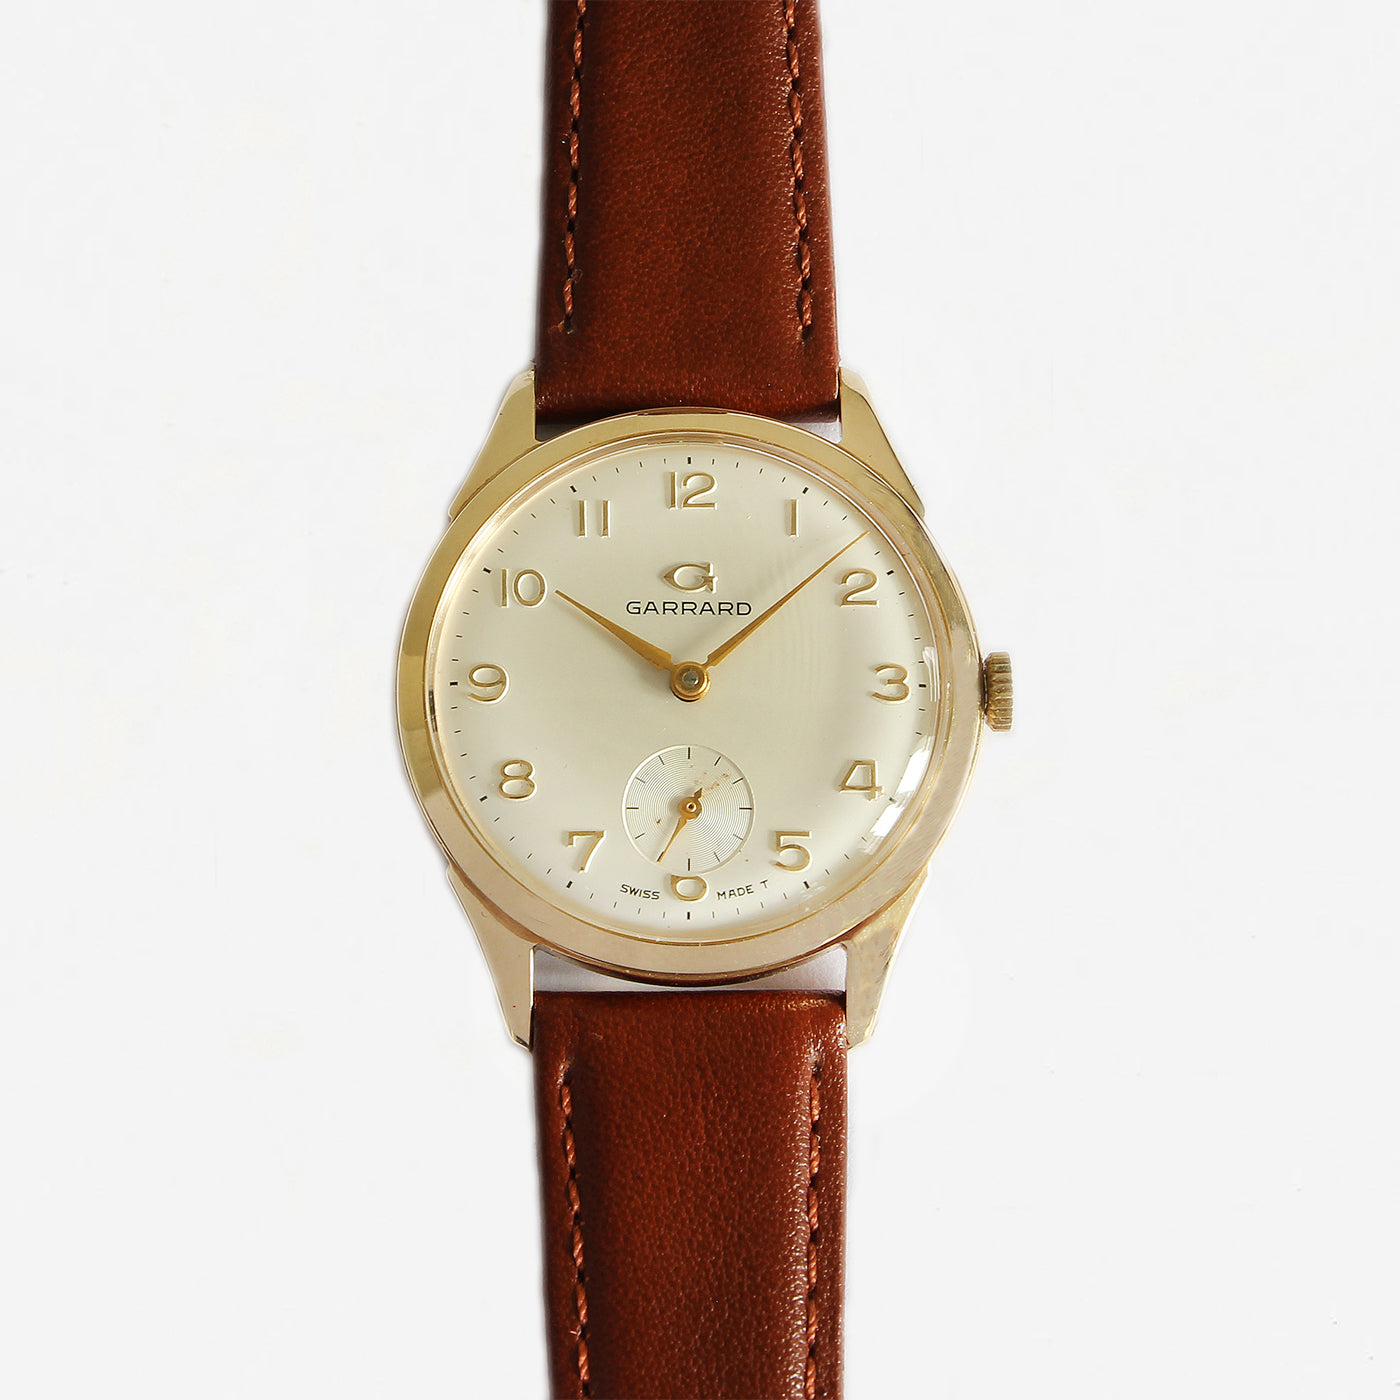 a garrard secondhand vintage watch with gold case and leather strap